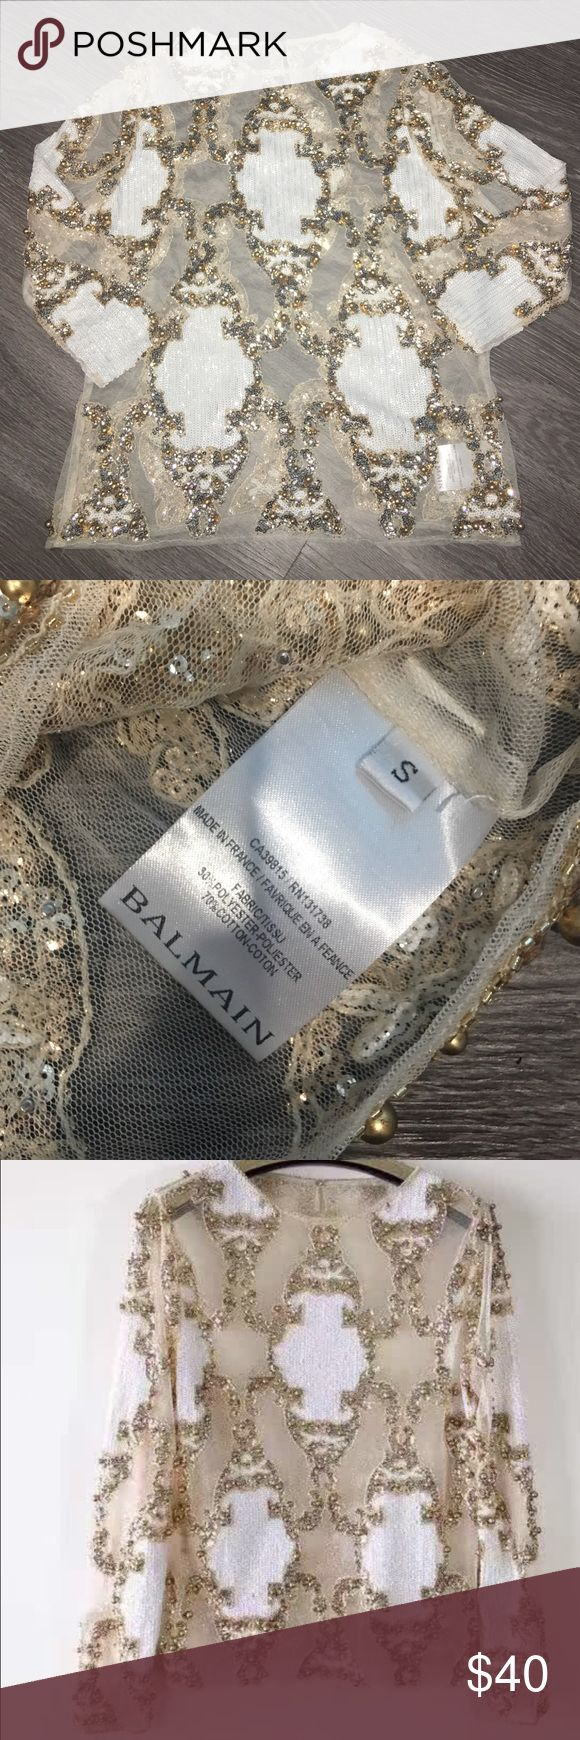 BALMAIN inspired nude mesh sequin runway top small Beautiful BALMAIN inspired women's nude mesh top with white and gold sequins and beading. Size small. New. Balmain Tops Blouses